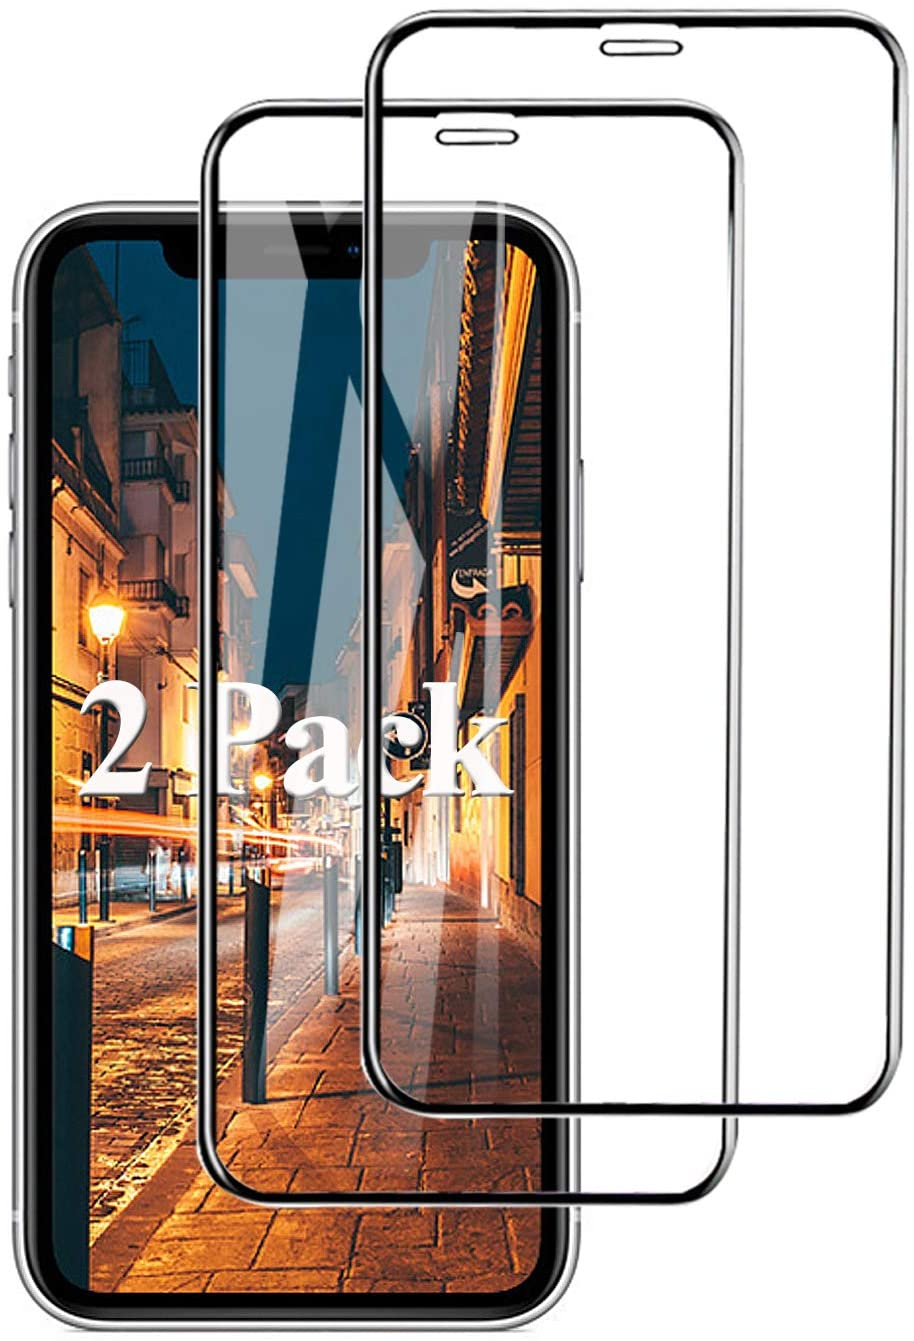 2 Pack 9D Full Coverage iP Xr Screen Protector Compatible With Apple iPhone X R Tempered Glass i-Phone 10r Xphone Rx HD Clear Anti-Scratch Bubble Protective Film Temped Glas (Black)